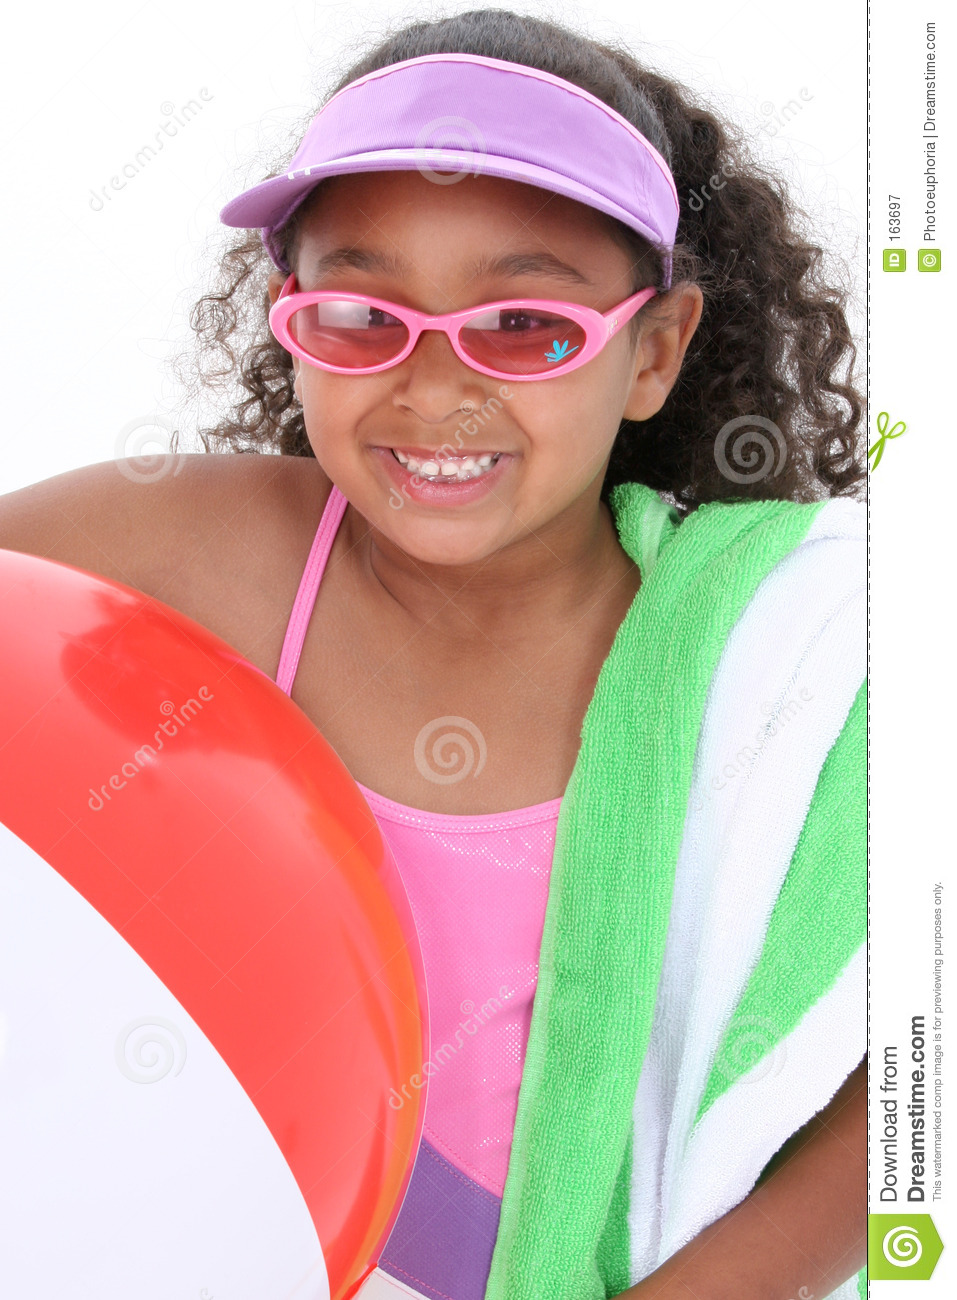 Adorable Young Girl Ready for the Beach